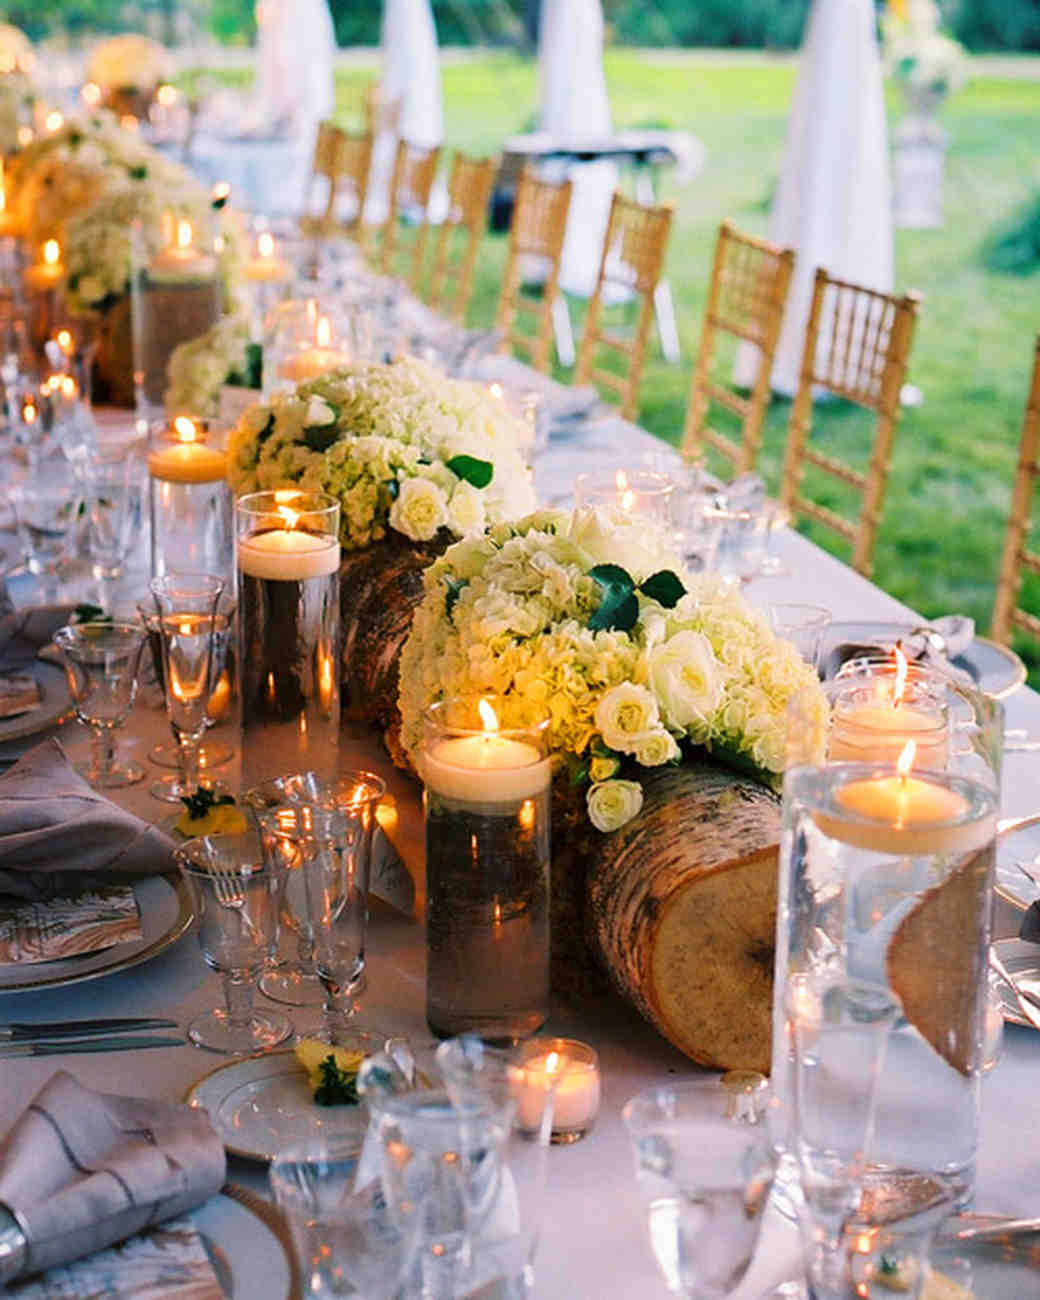 7 Barn Wedding Decoration Ideas For A Spring Wedding: 51 Rustic Fall Wedding Centerpieces